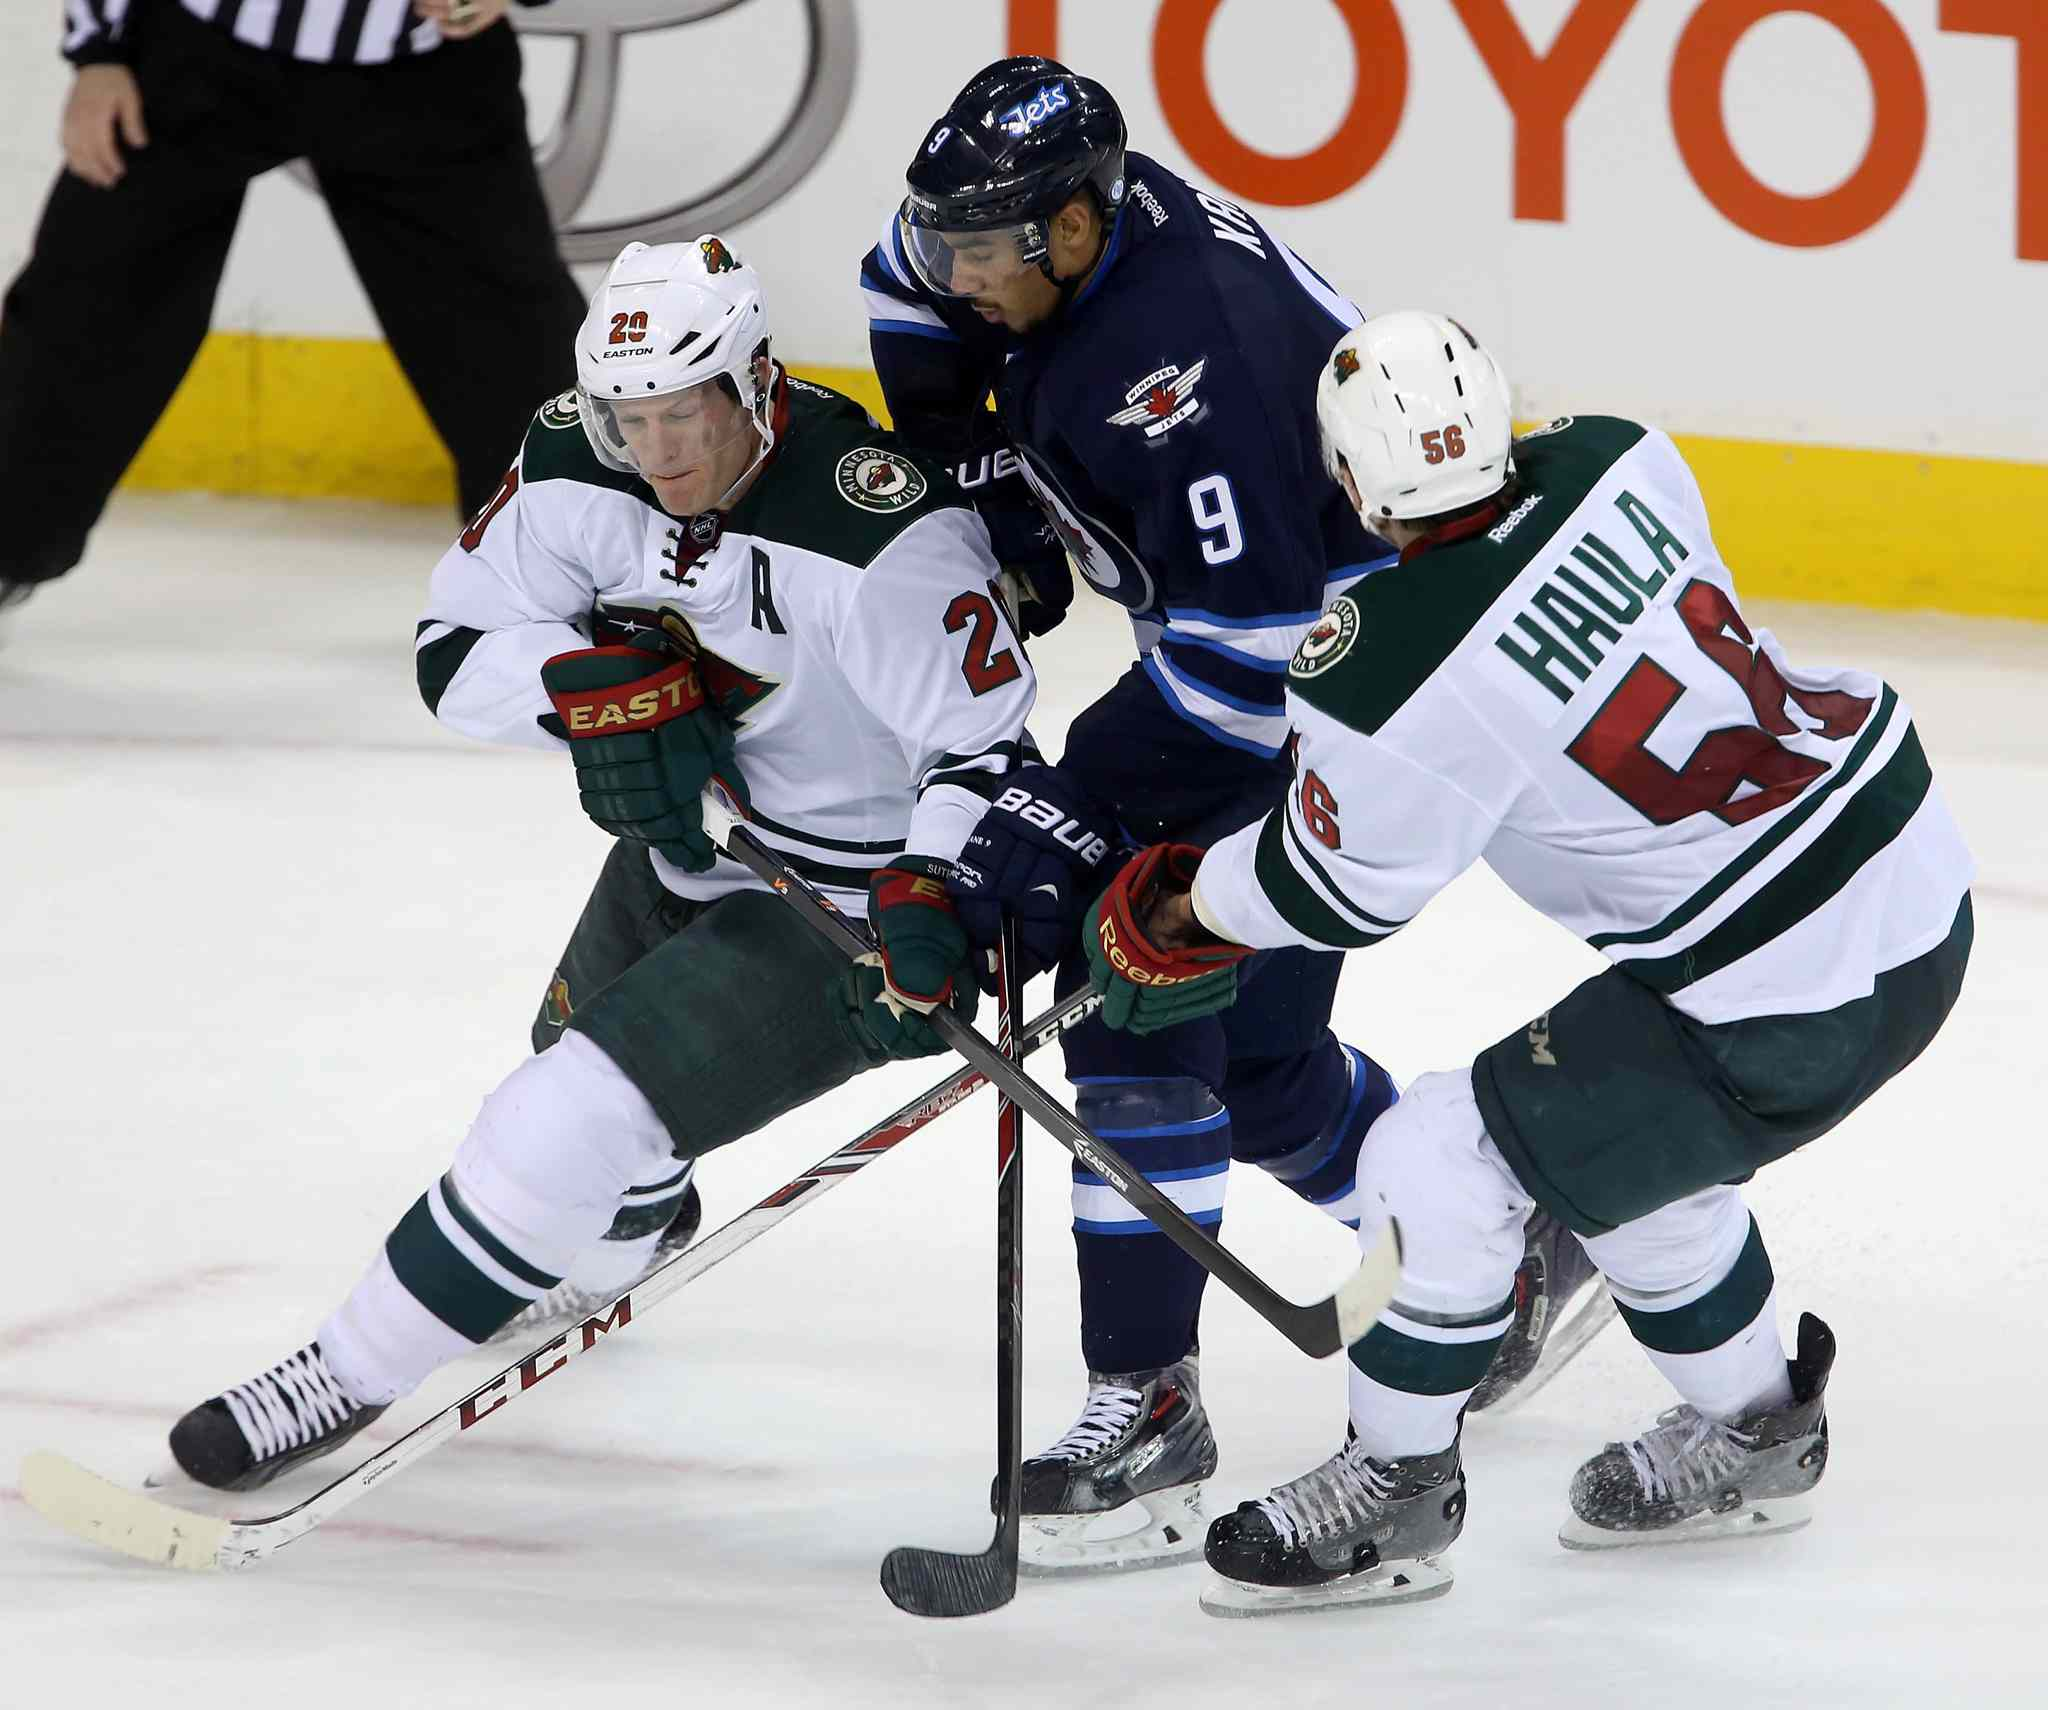 The Minnesota Wild's Ryan Suter (20) and Erik Haula sandwich Jets forward Evander Kane during third-period play.